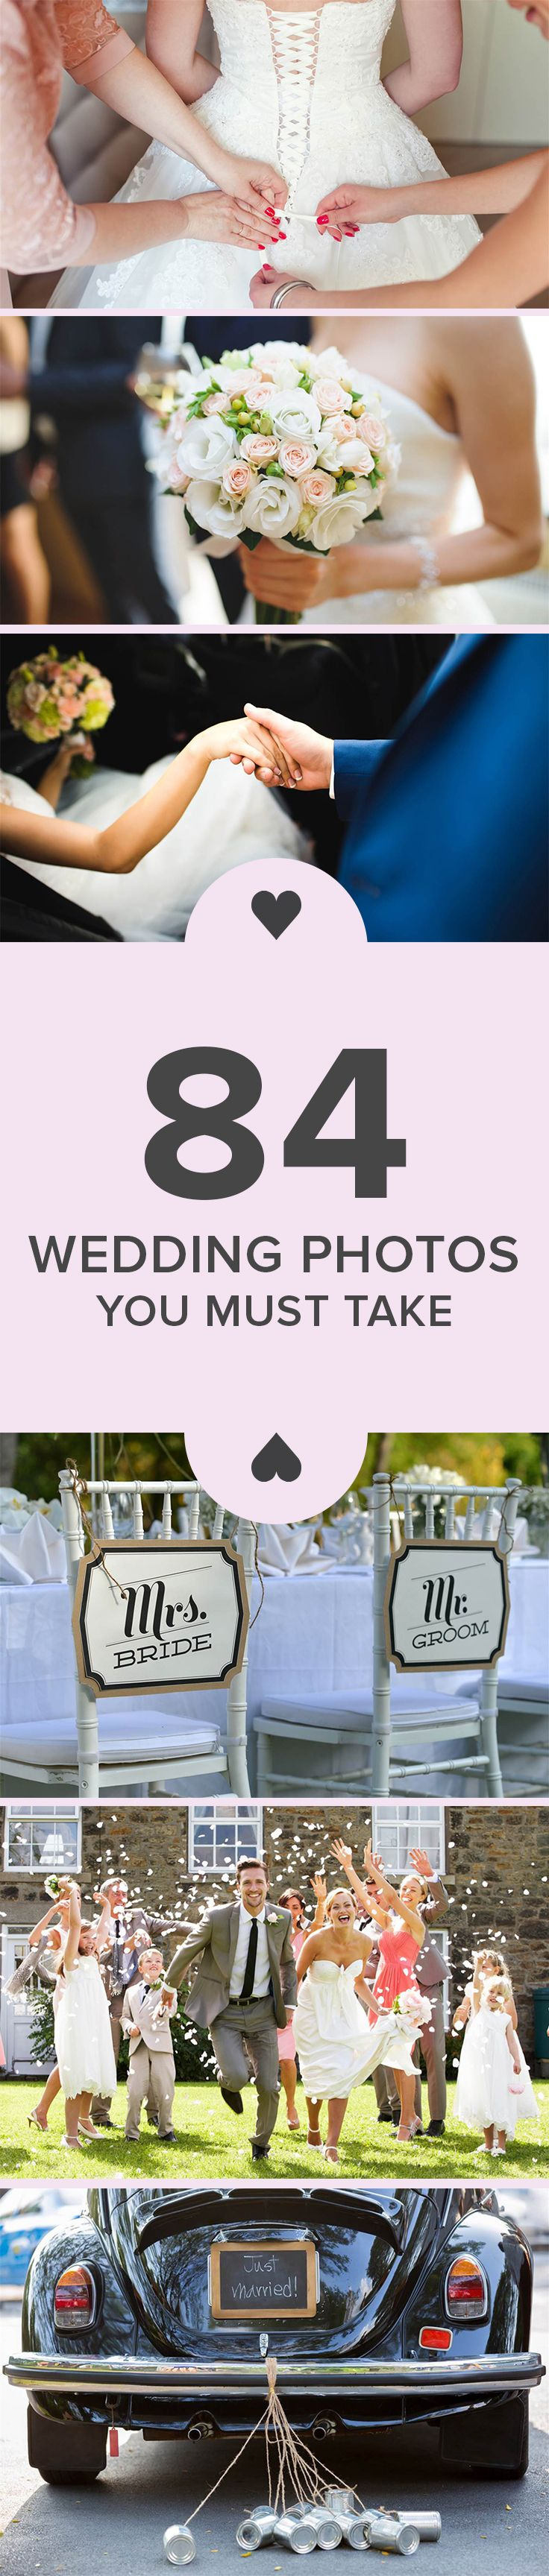 86 Wedding Photos You Cant Forget To Capture